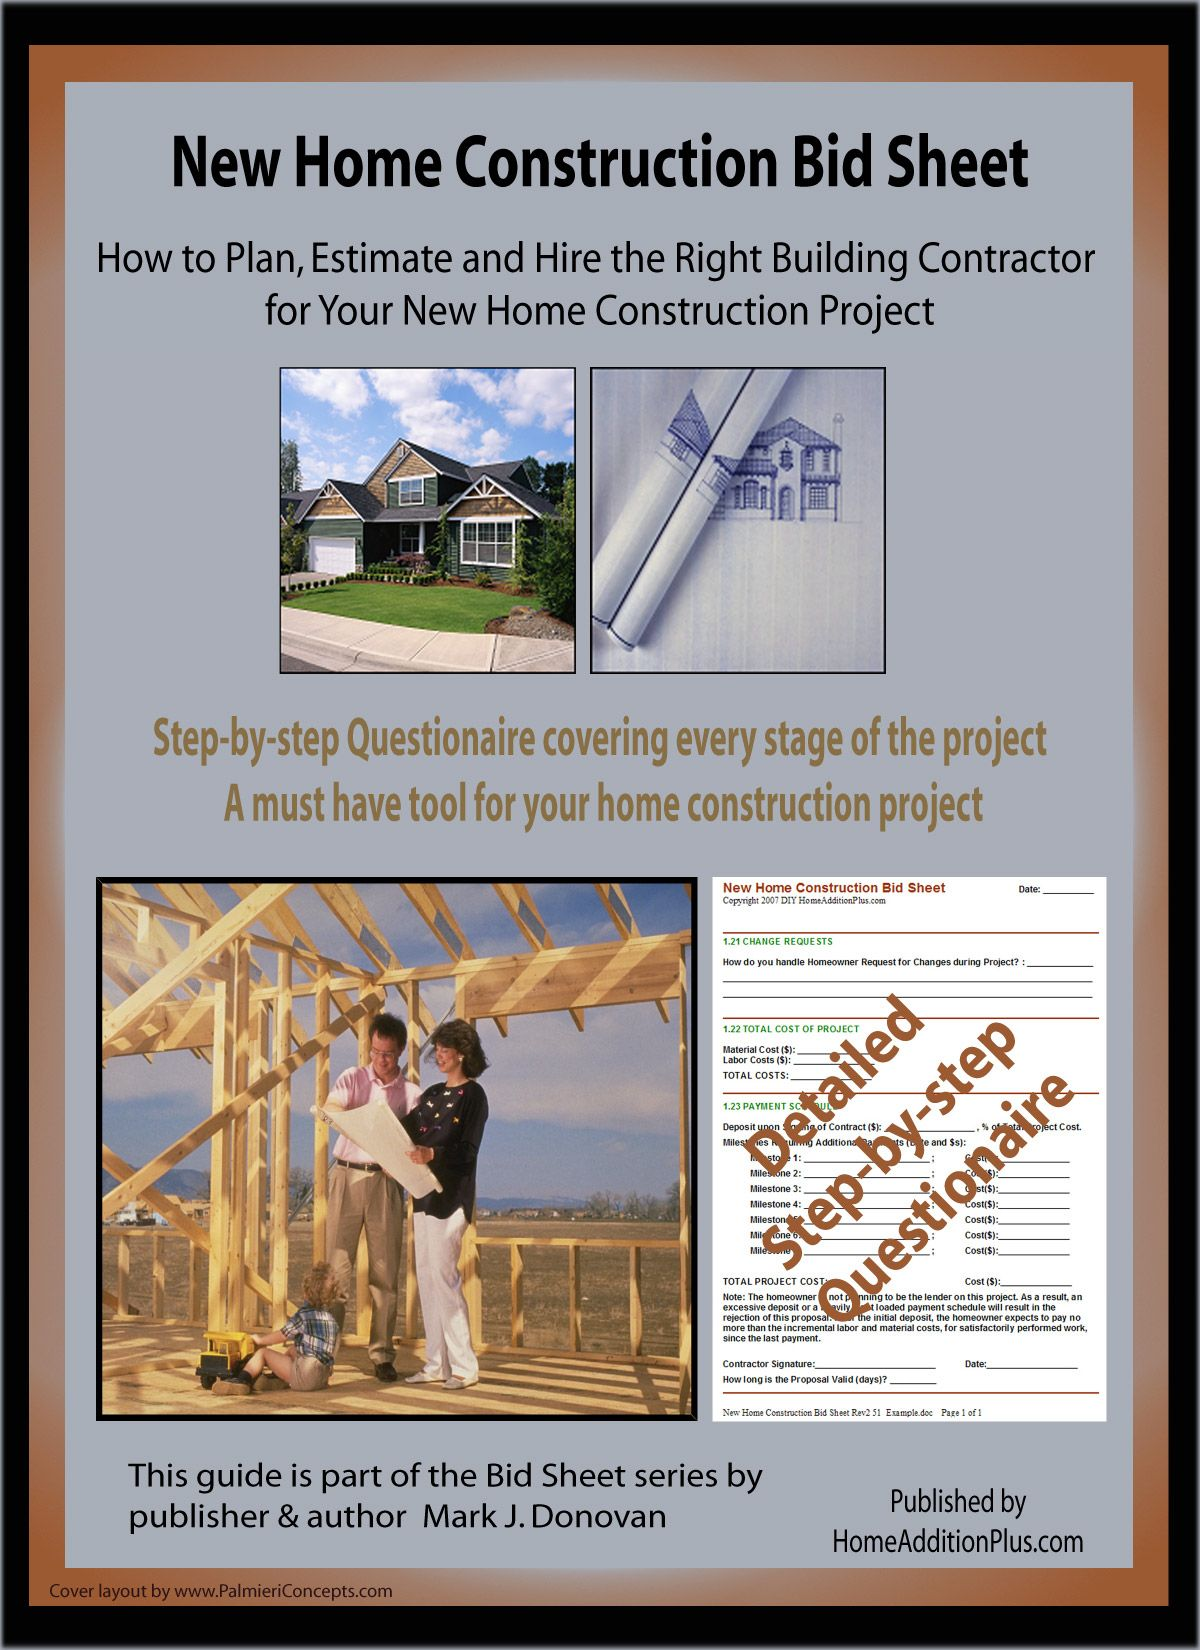 Here Is A New Home Construction Bid Sheet For Helping Soon To Be Homeowners Hire The Right